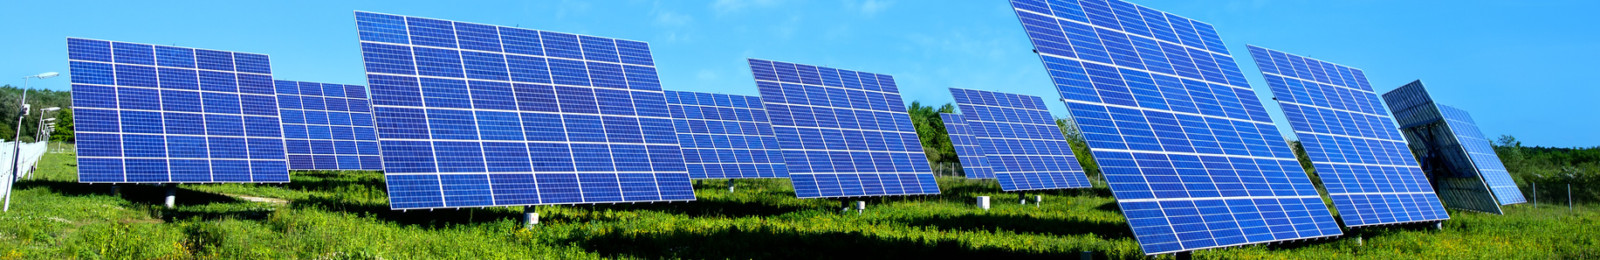 GE Plans Largest Solar Panel Manufacturing Plant in U.S.page banner image